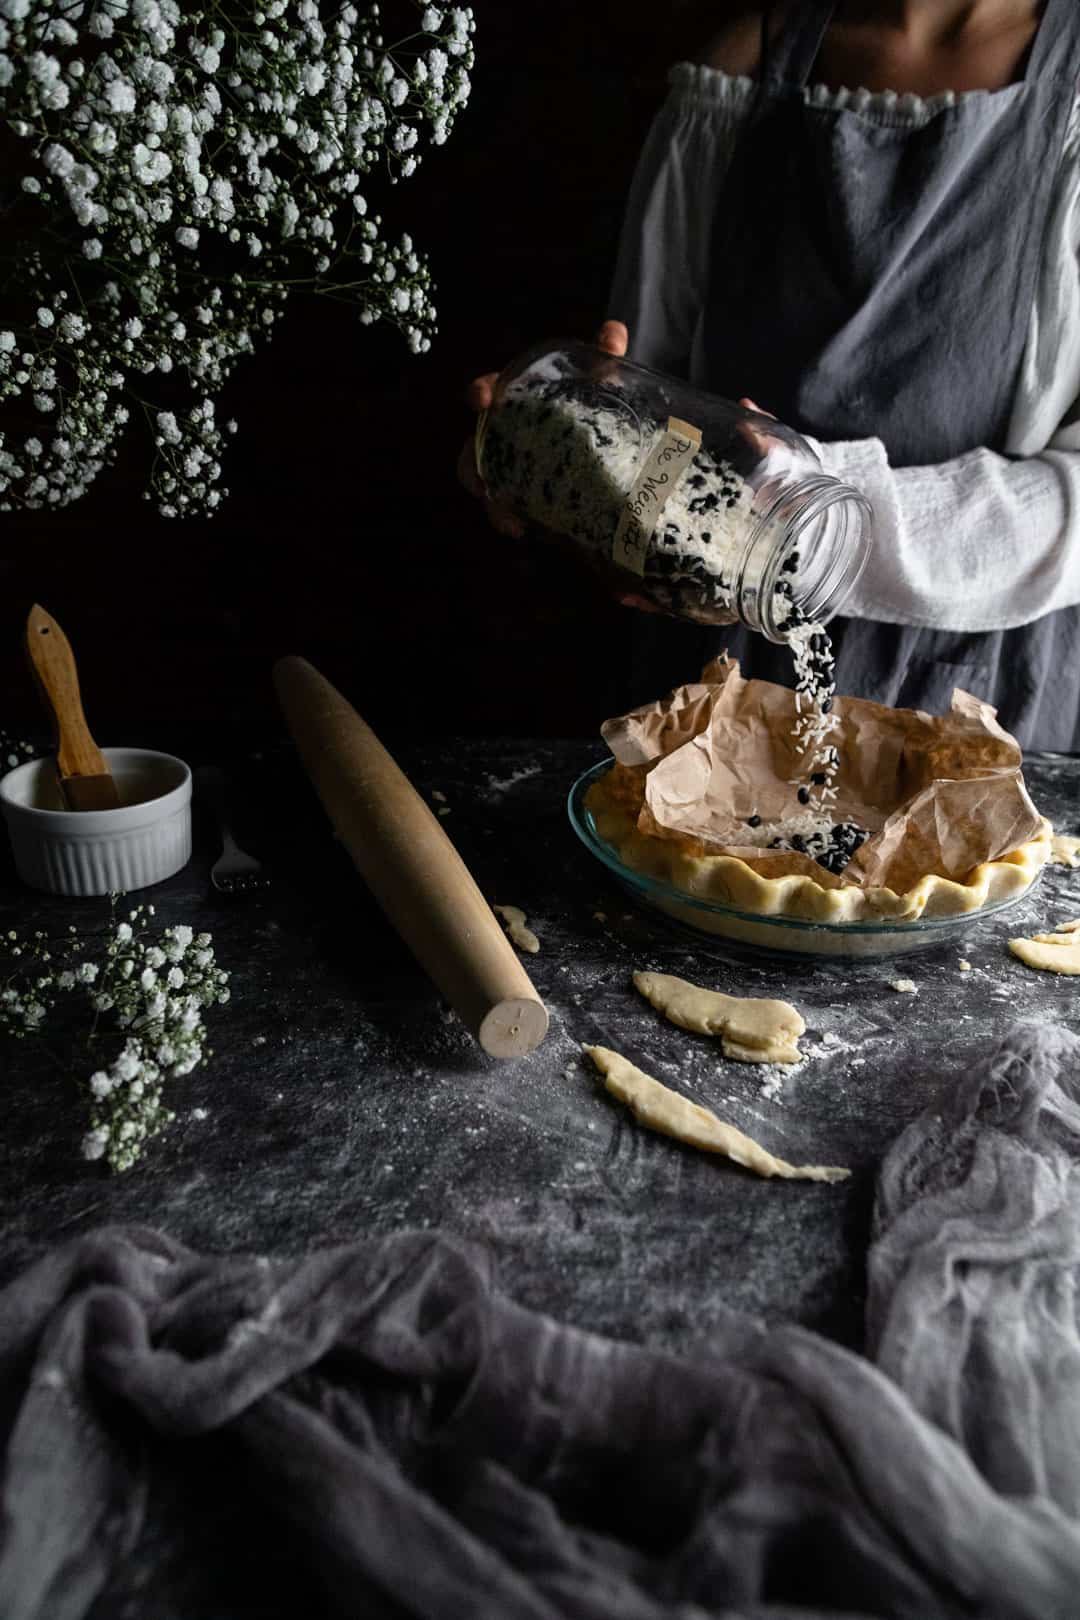 A woman pouring dried rice and beans from a jar into the coffee-filter lined unbaked pie crust. She is preparing the pie crust for blind baking.